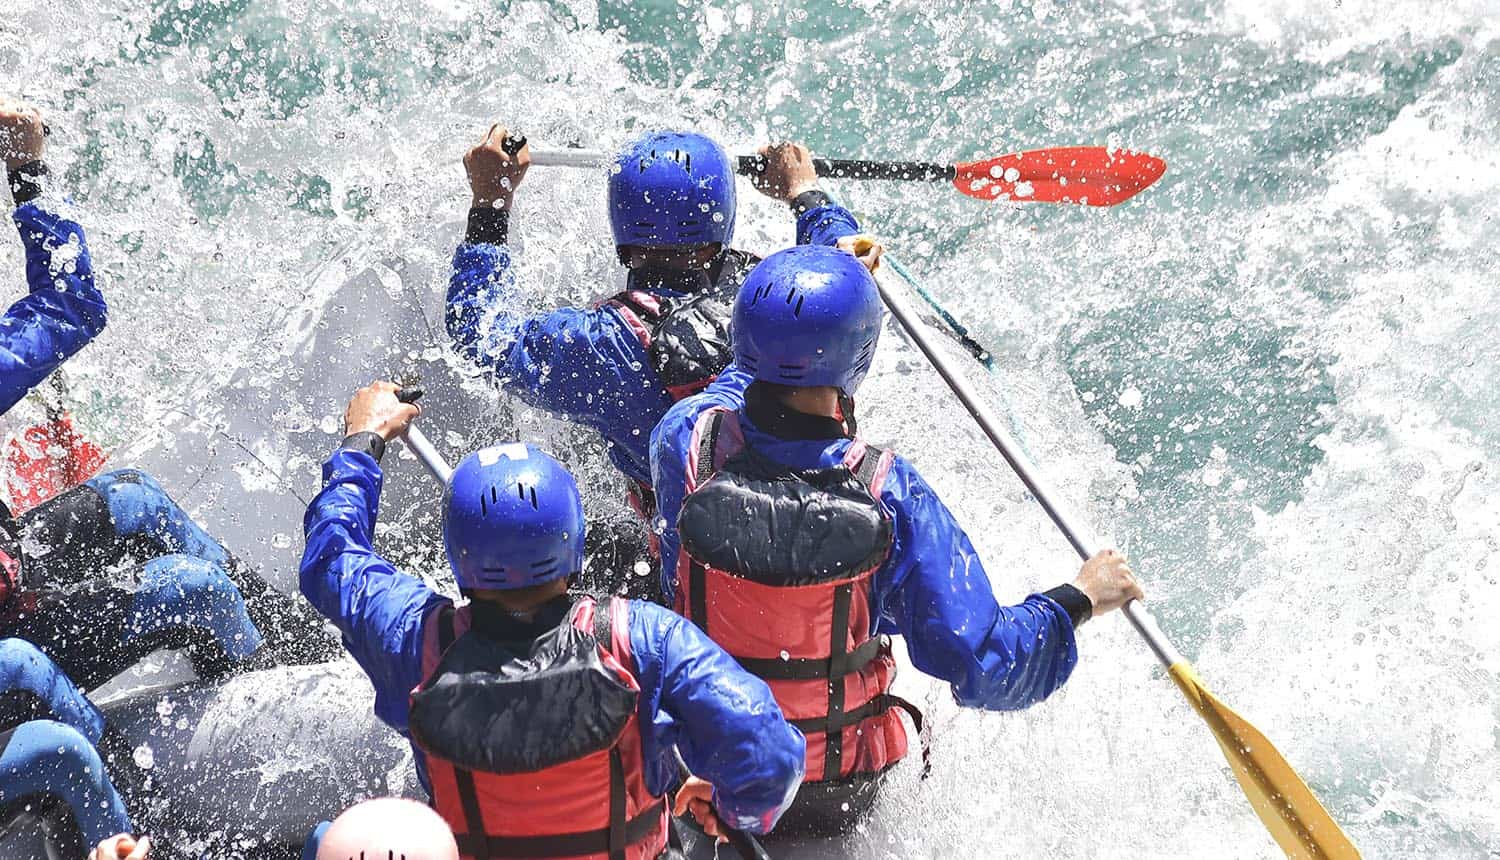 Rafting team splashing the waves showing privacy challenges in a new world